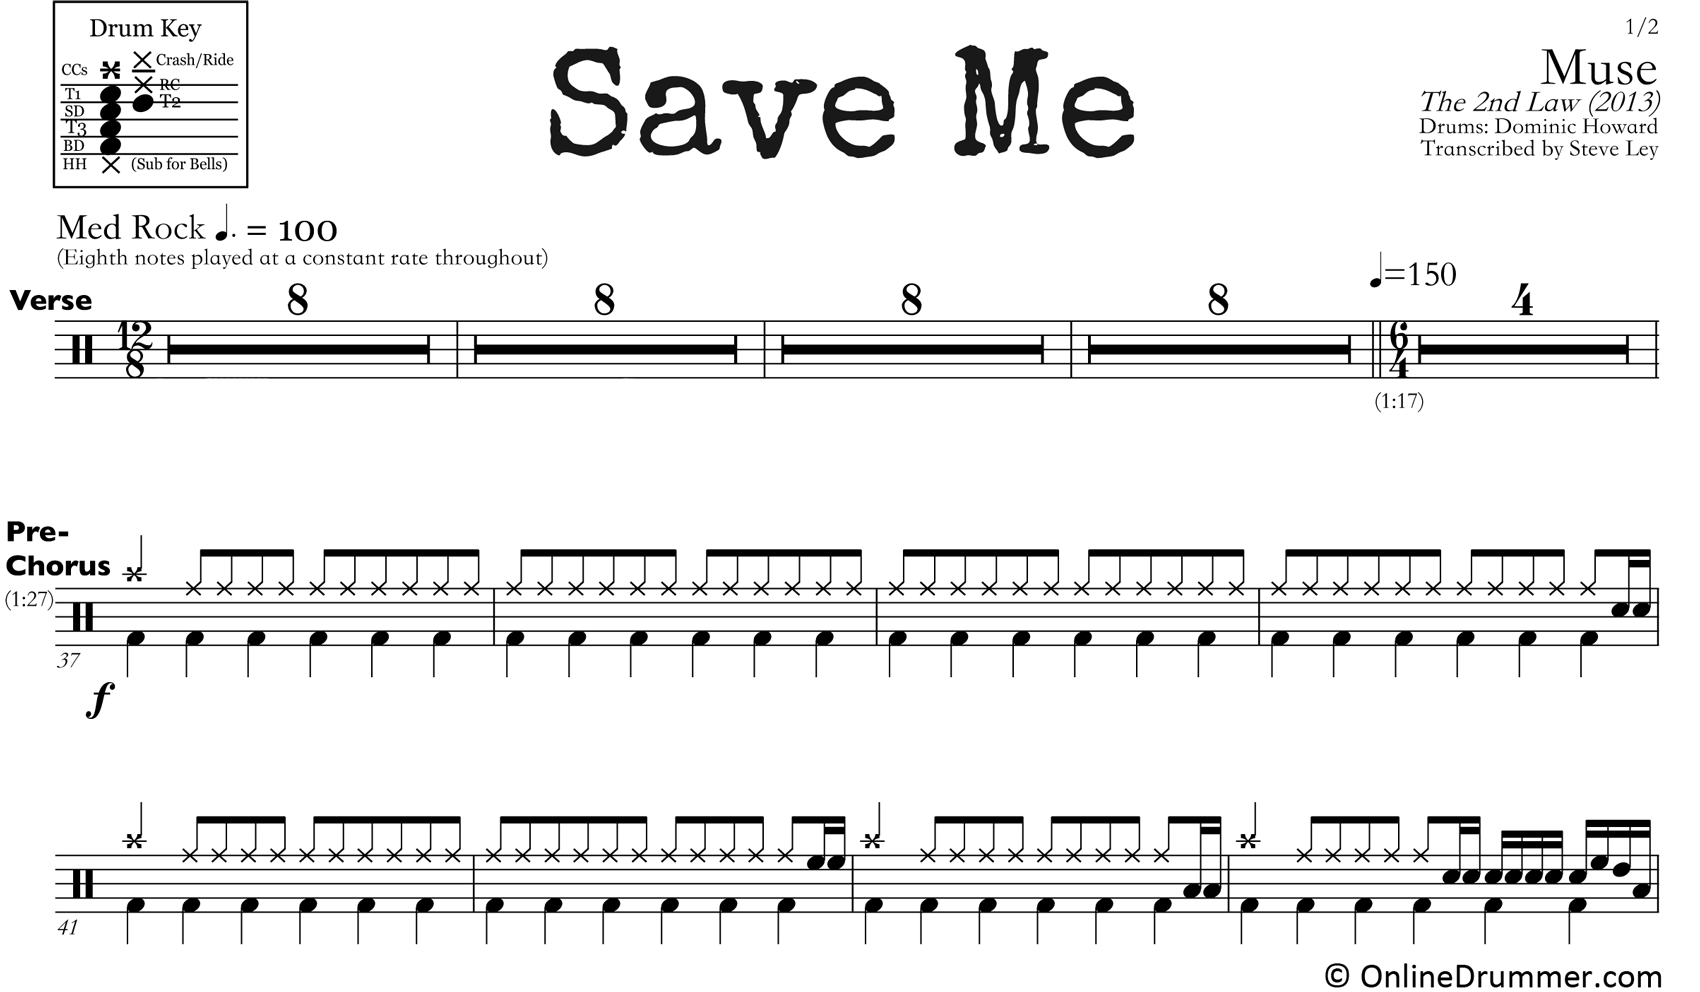 Save Me - Muse - Drum Sheet Music